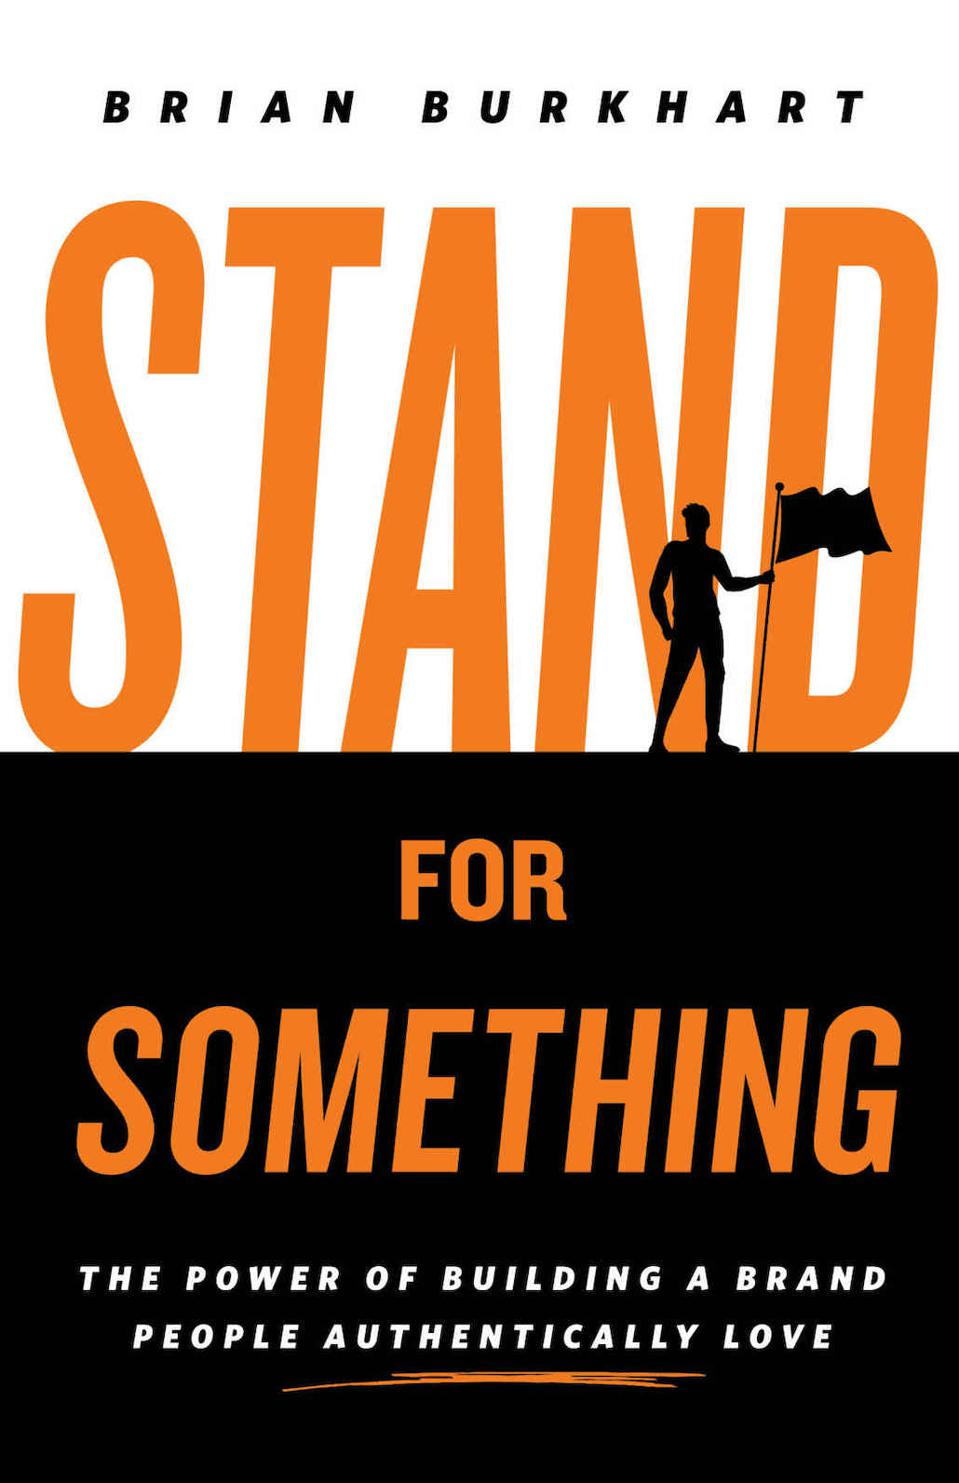 Stand for Something: The Power of Building a Brand People Authentically Love by Brian Burkhart